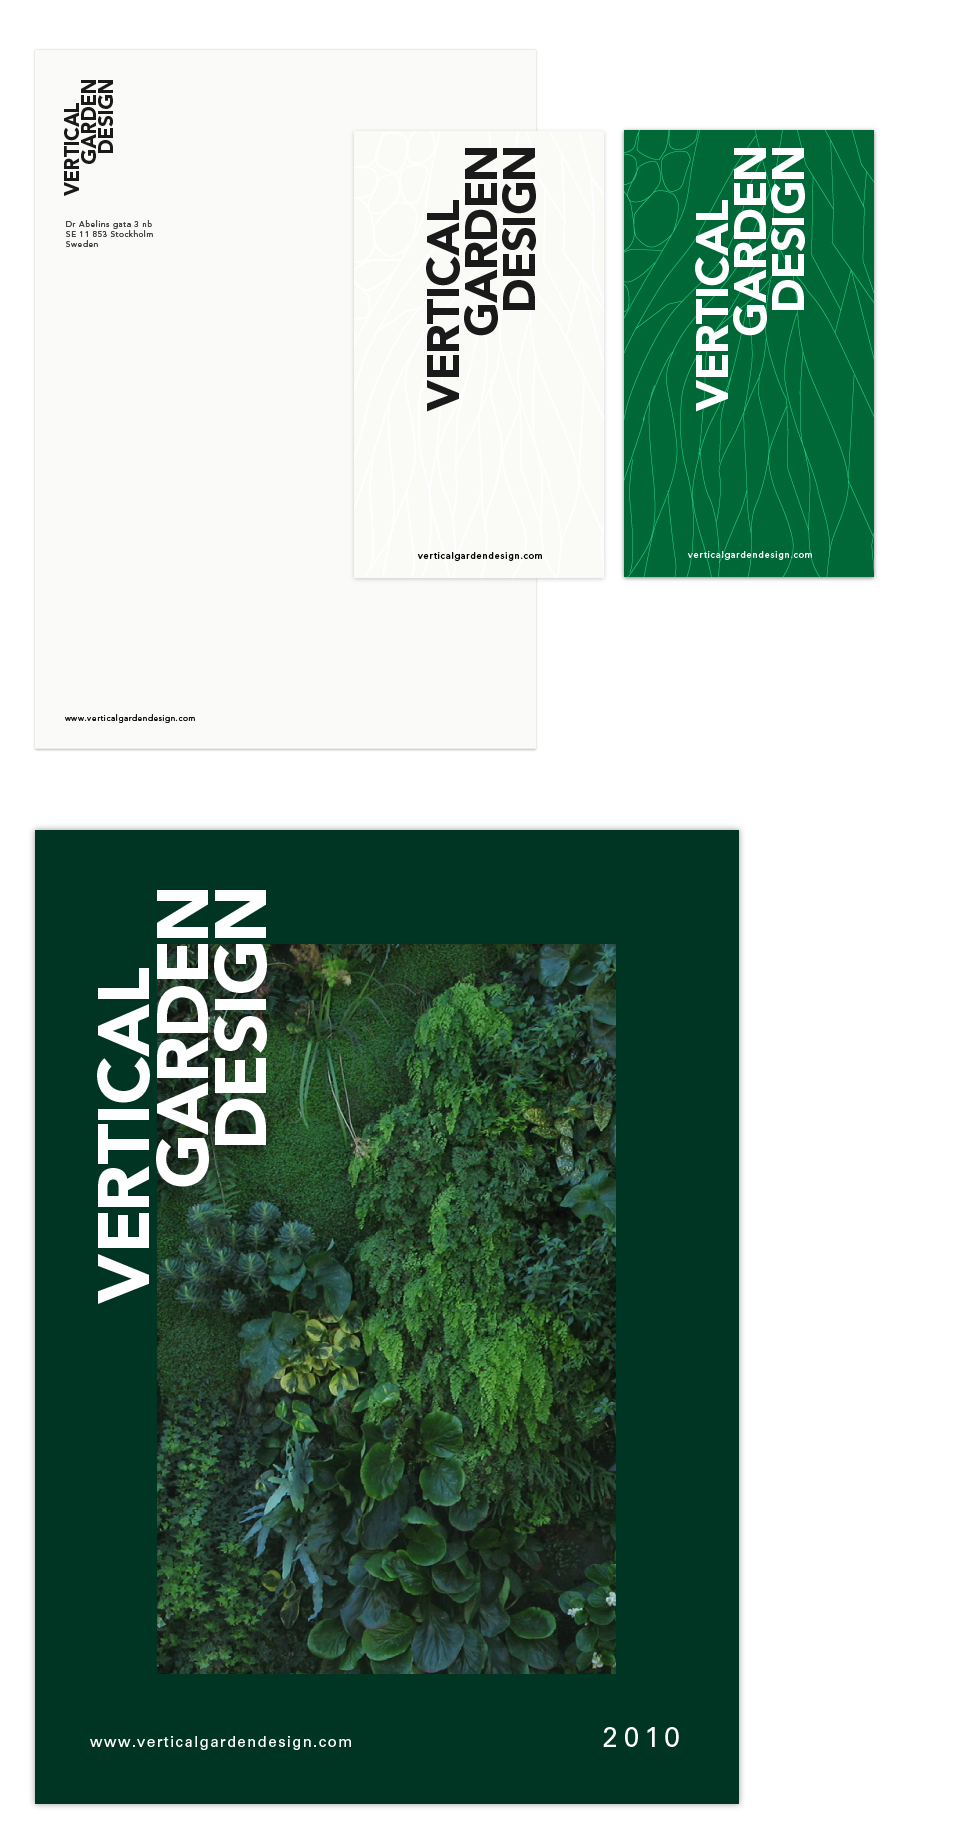 Vertical_garden_design_id4_original